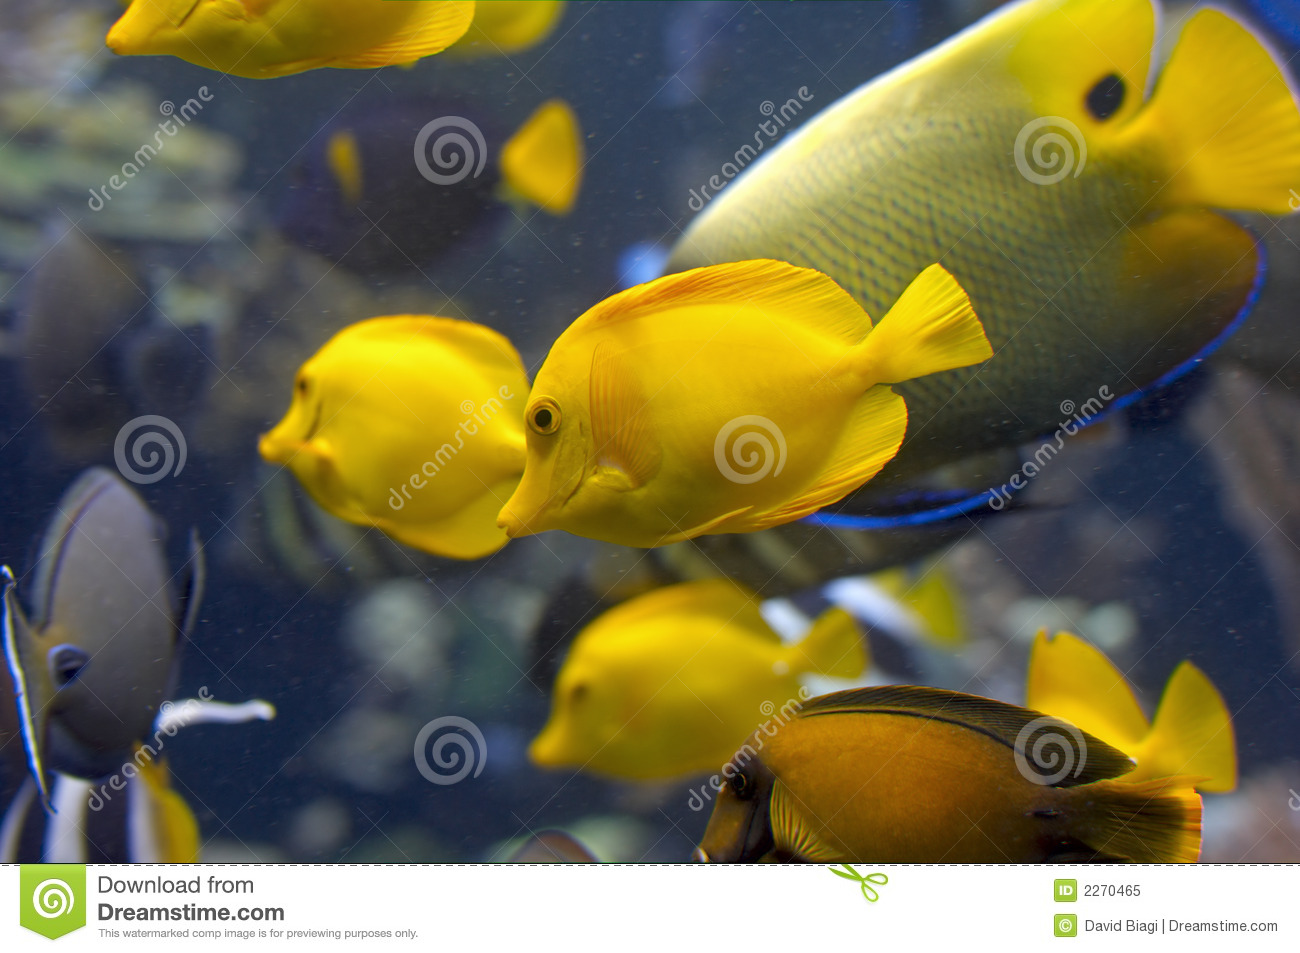 Yellow fish in tank royalty free stock photo image 2270465 for Yellow fish tank water